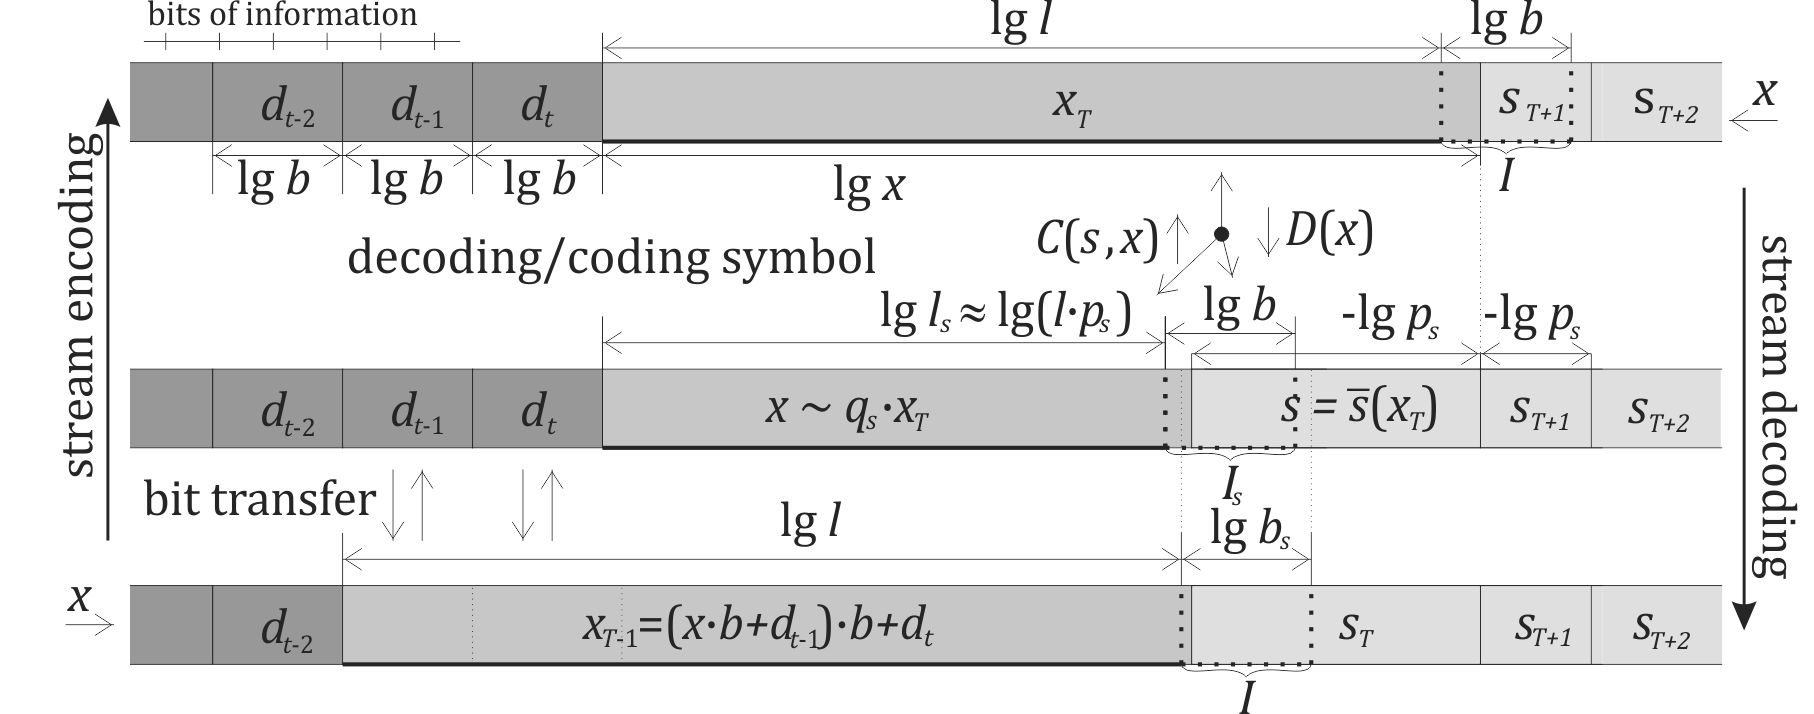 Schematic picture of stream encoding/decoding: encoder travels right, transforming symbols containing